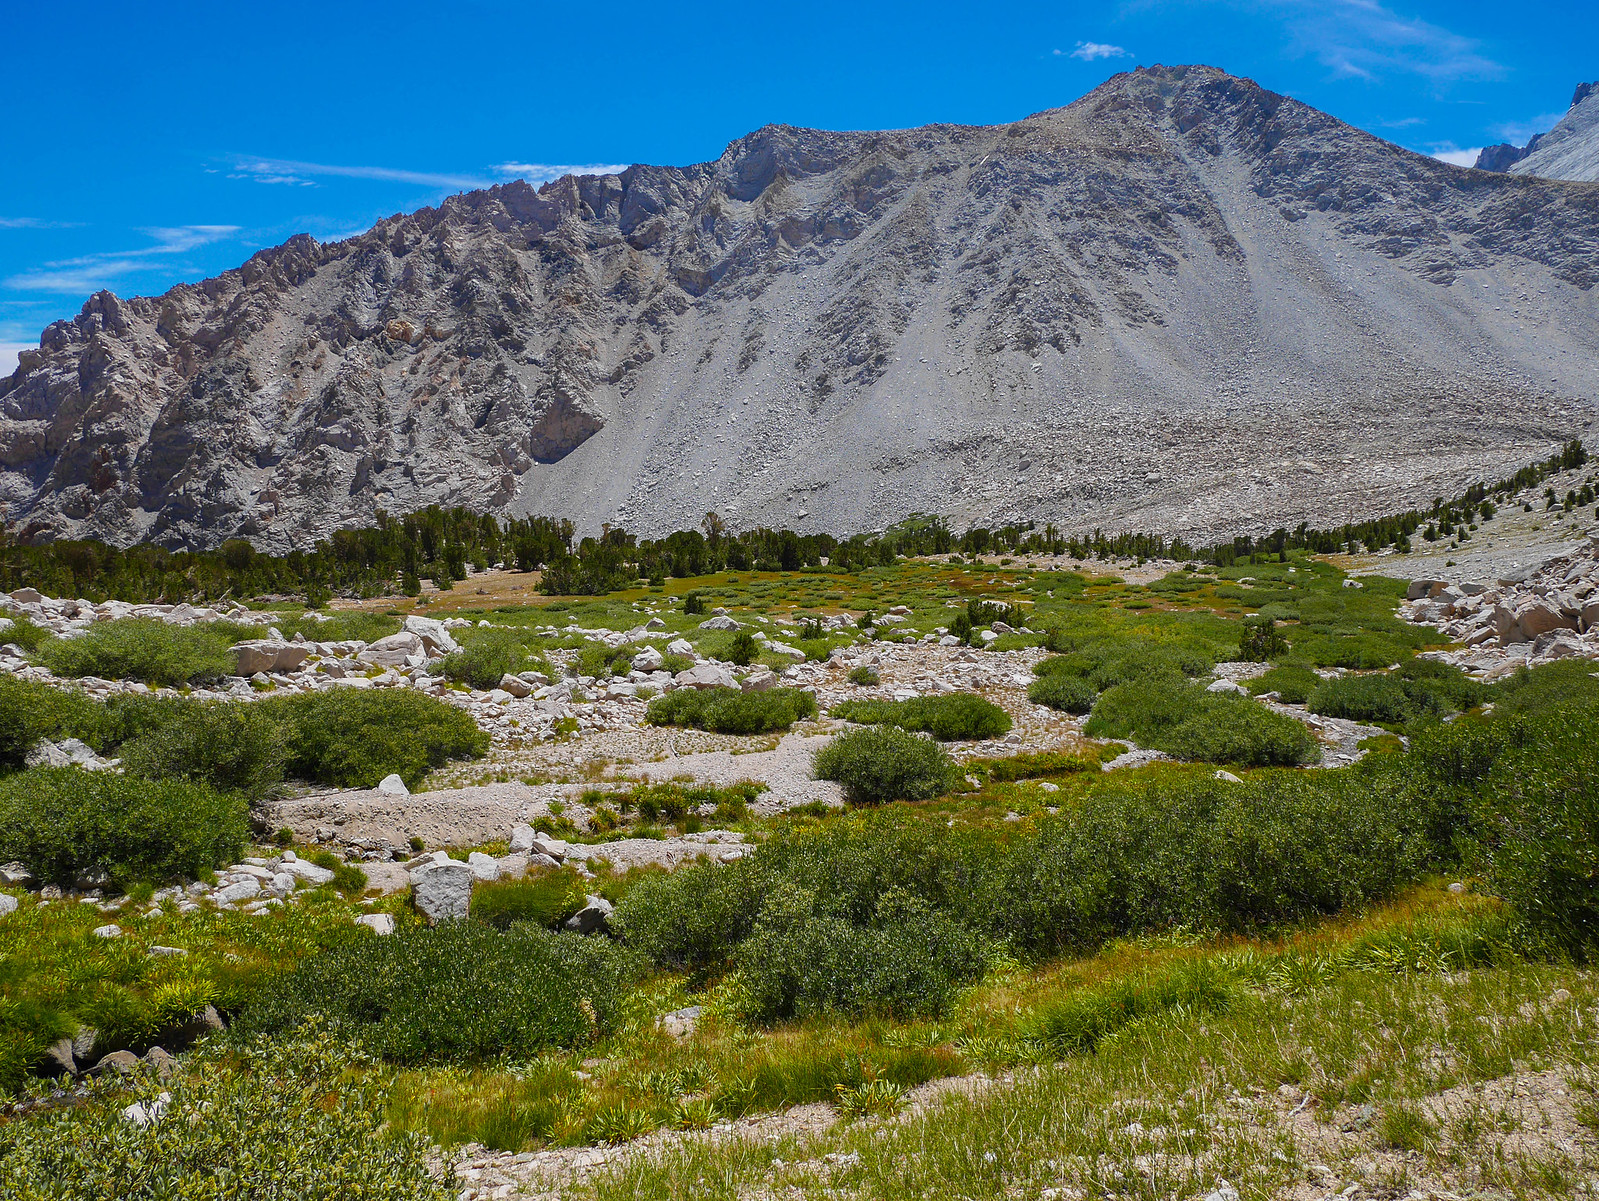 The Oasis area at the end of the talus below Junction Pass